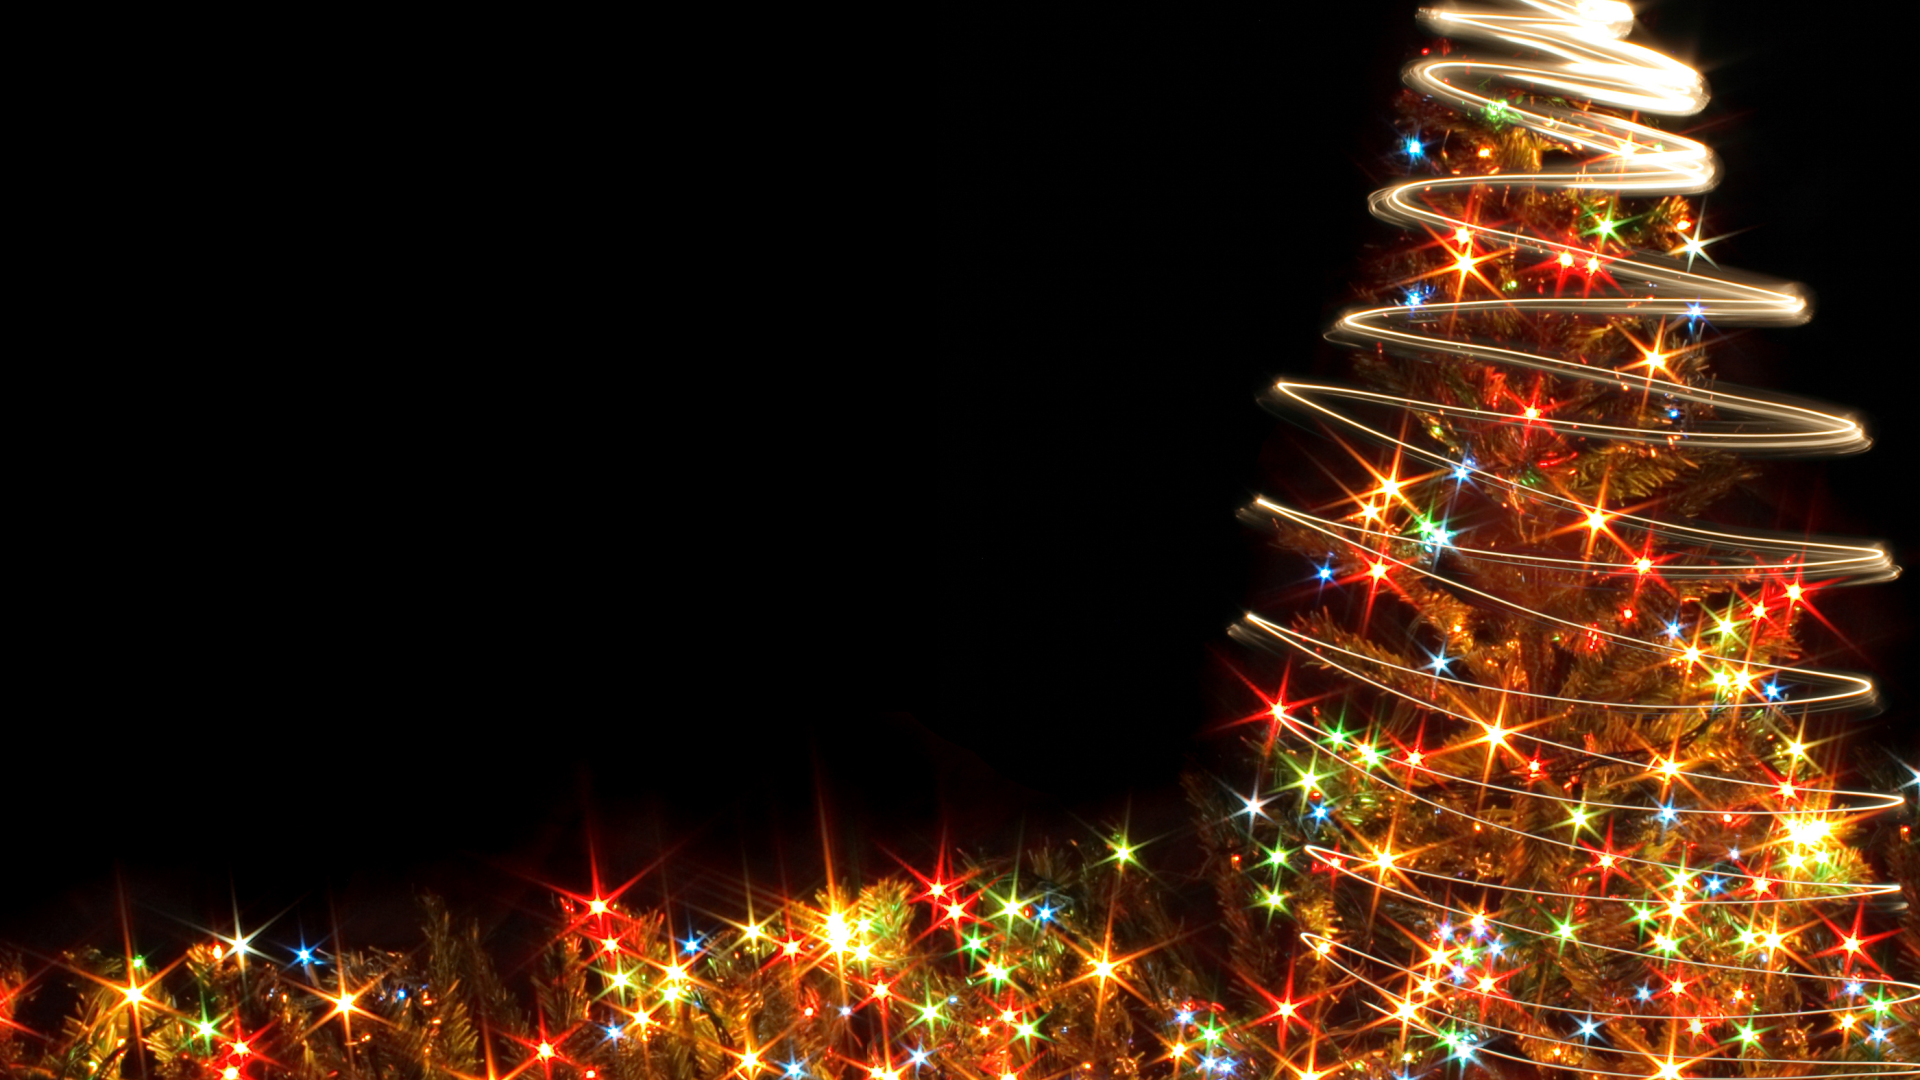 Hd Images Png >> Background-Blog-Biossegurança-Natal-4.png - Blog Biossegurança | Cristófoli